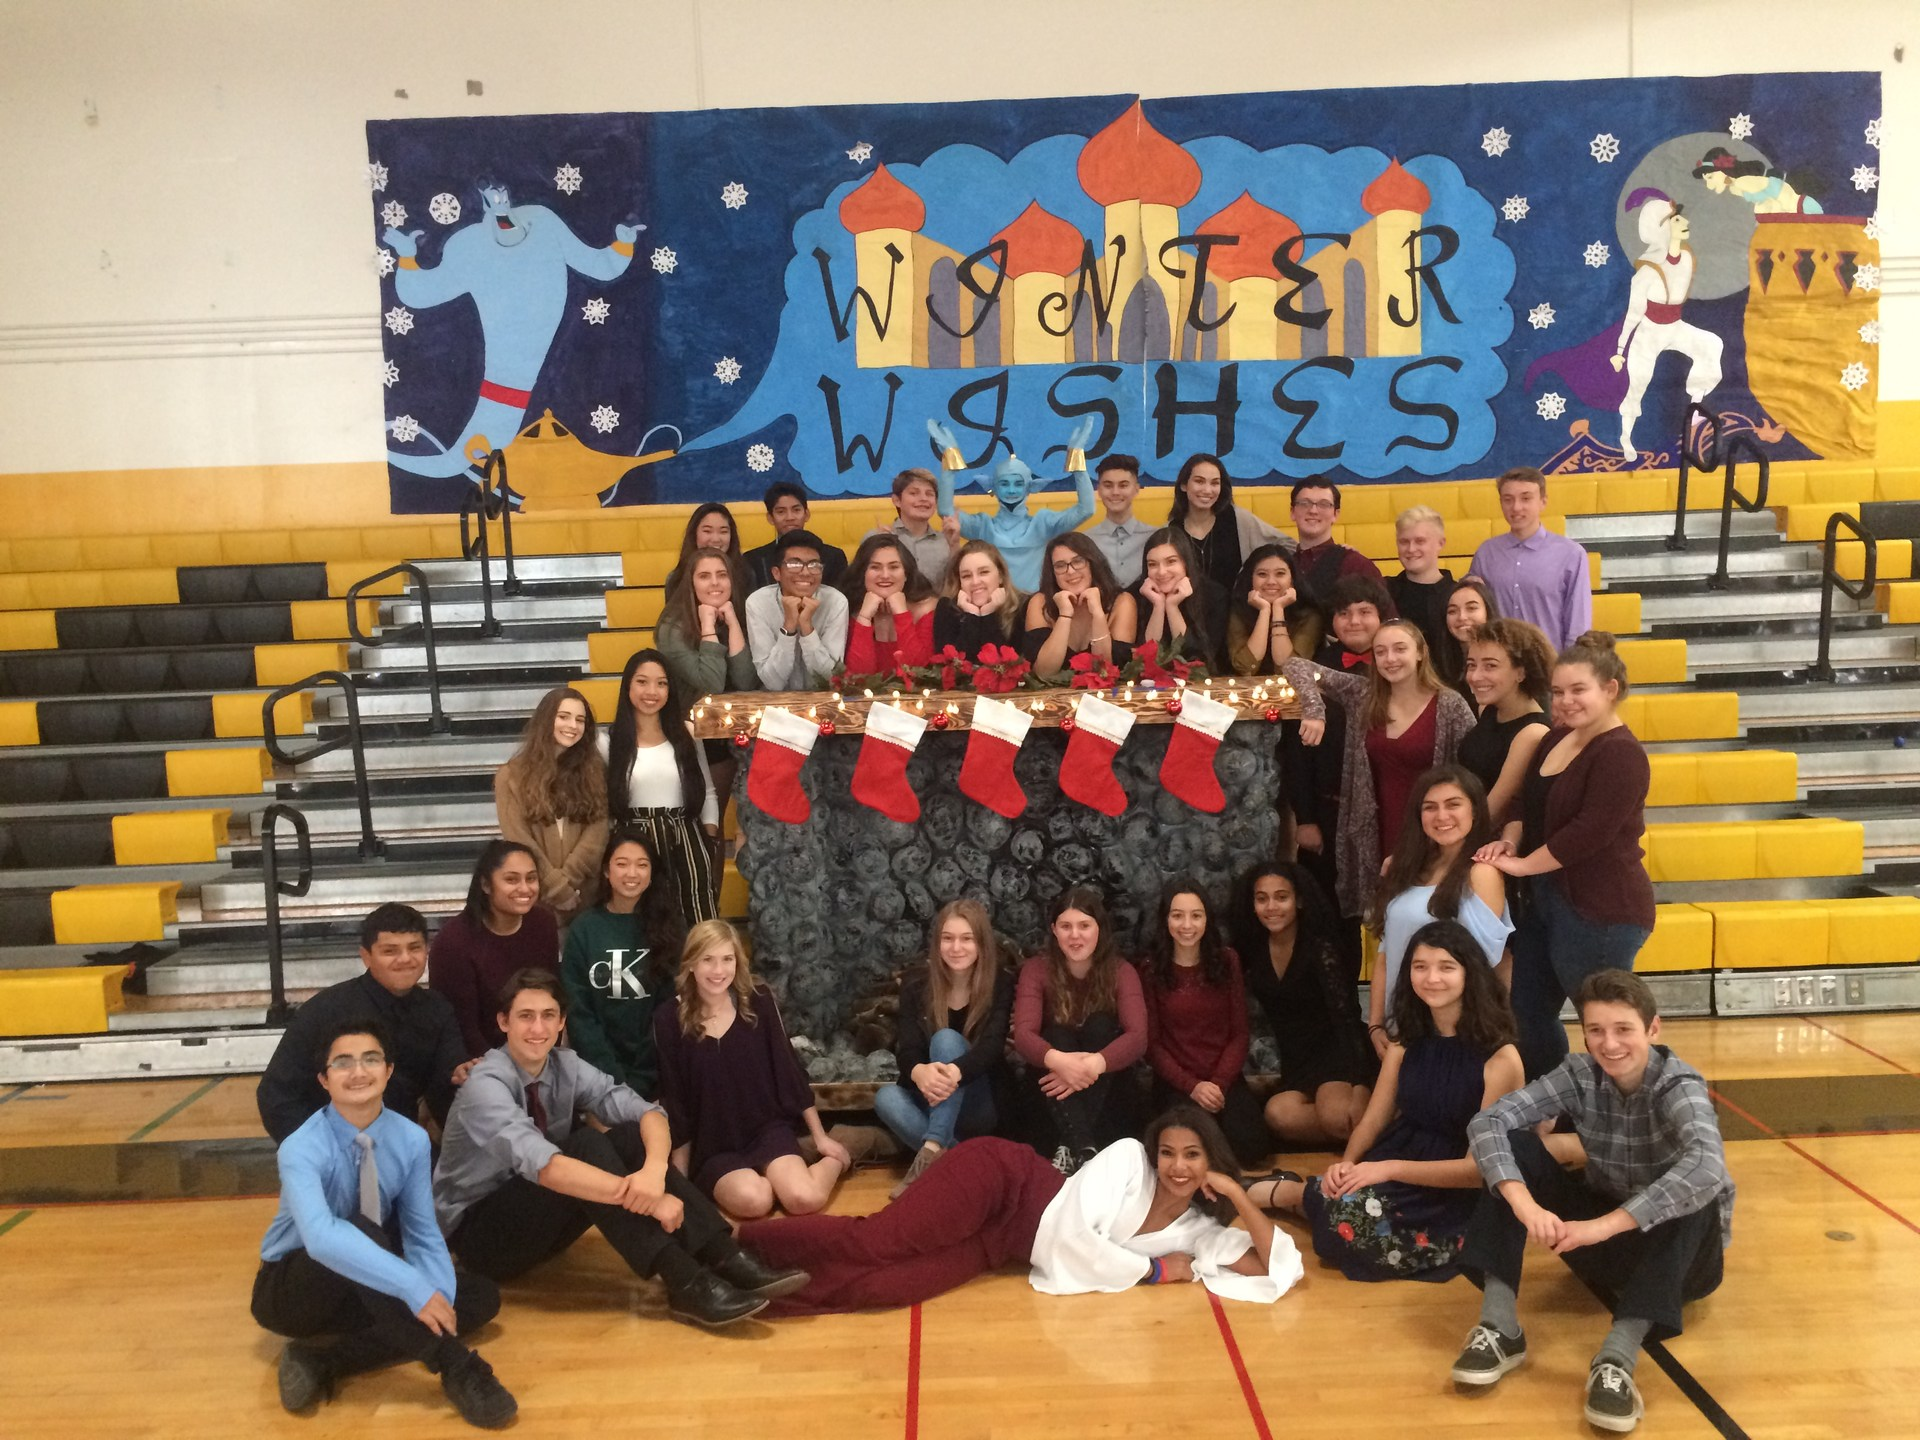 Image of Associated Student Body Government at 2017 Winter Wishes Event